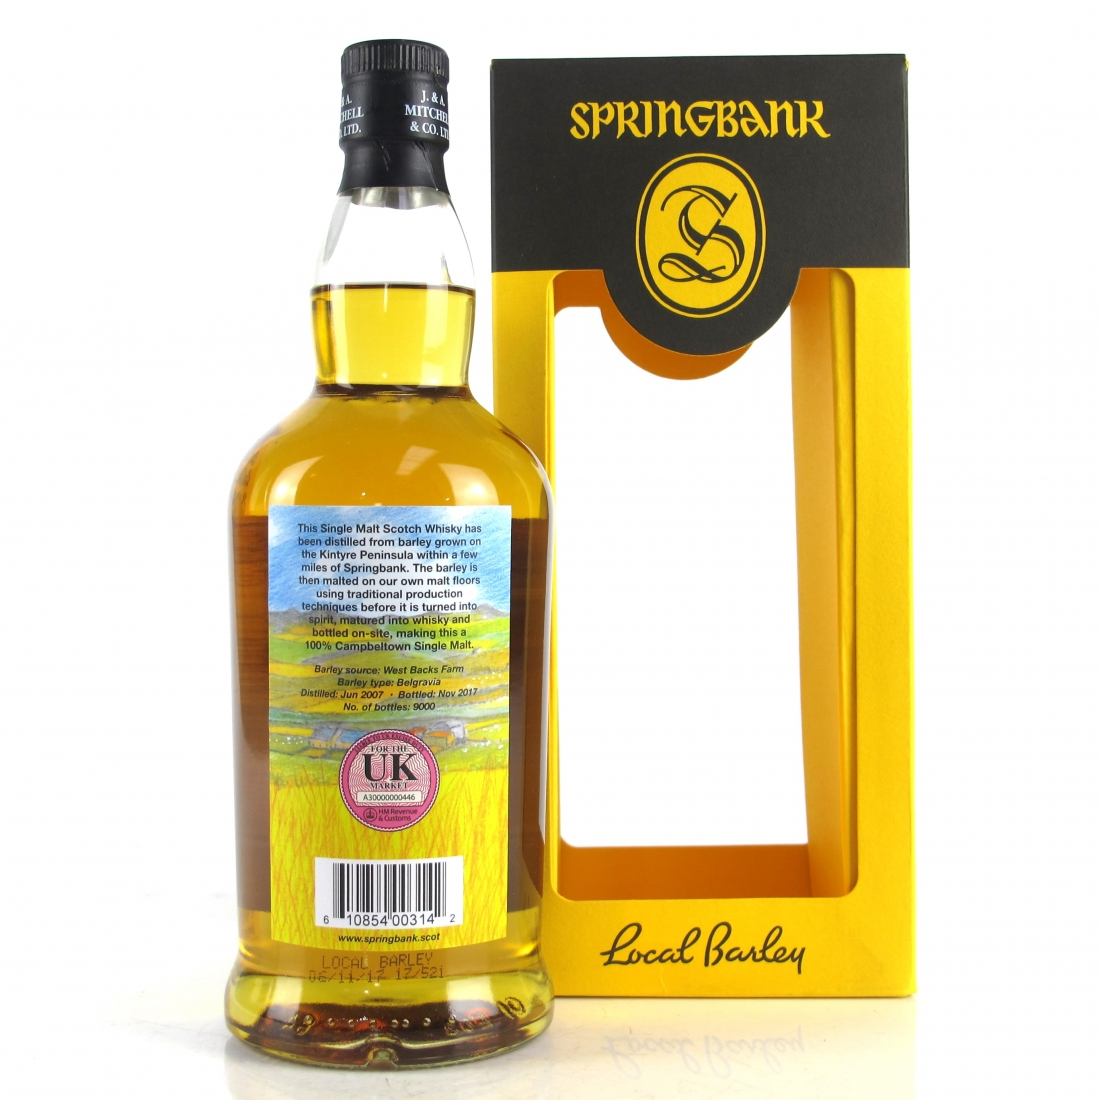 Springbank 2007 Local Barley 10 Year Old